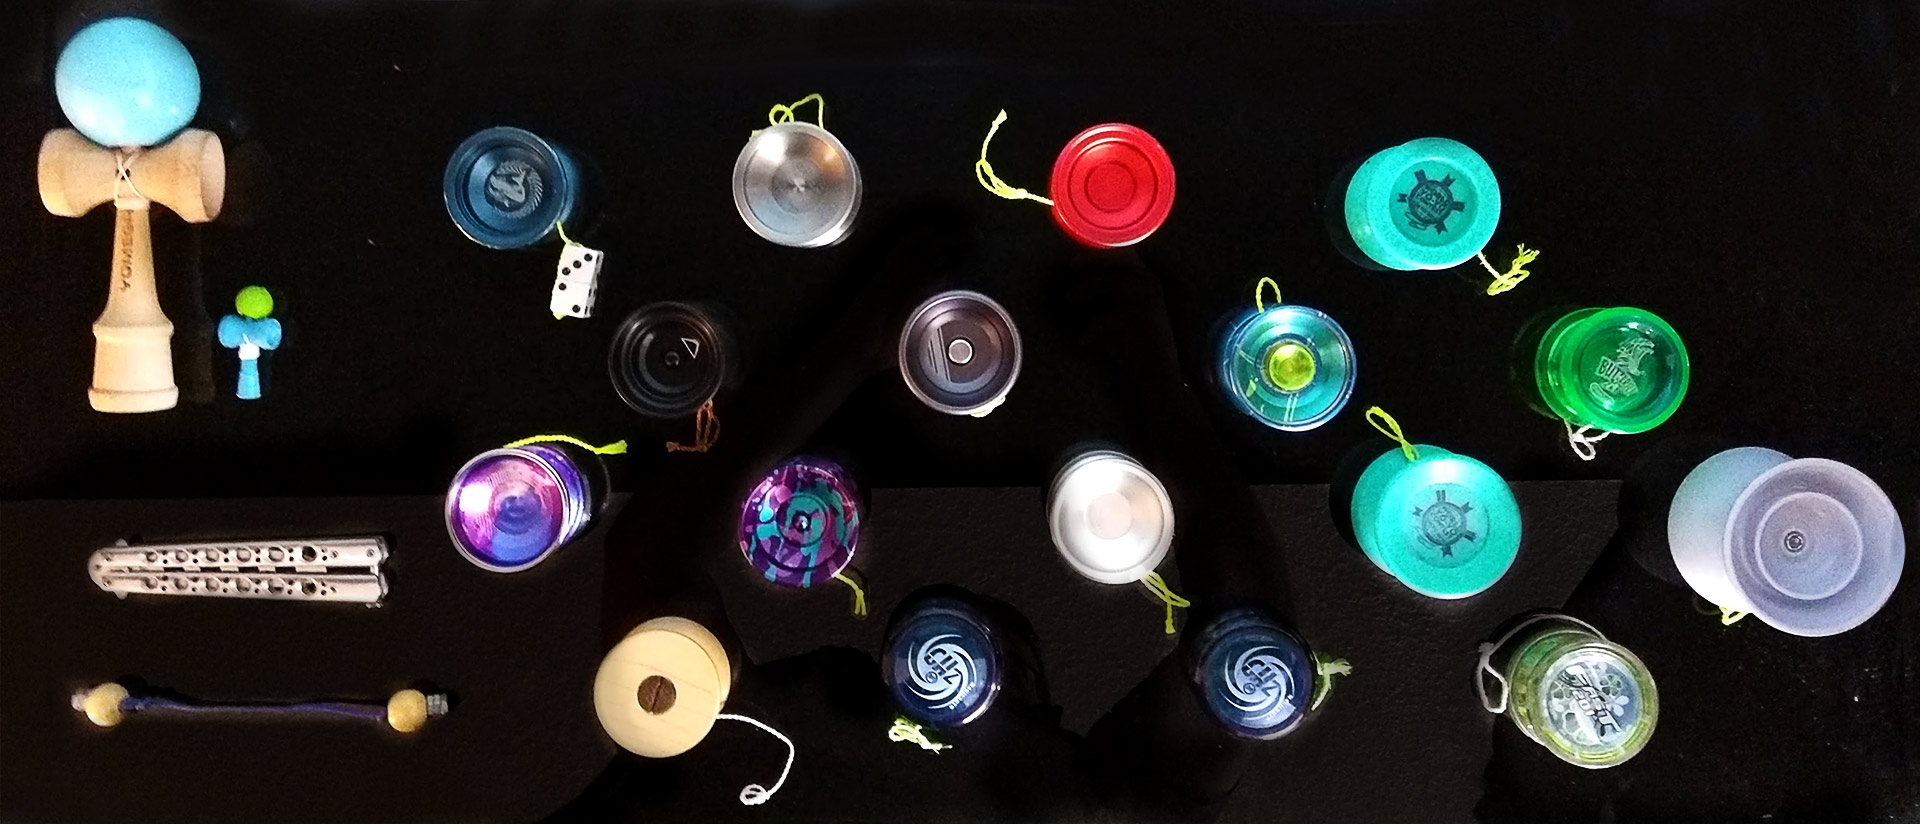 A series of yoyos and other skill toys arranged in a grid